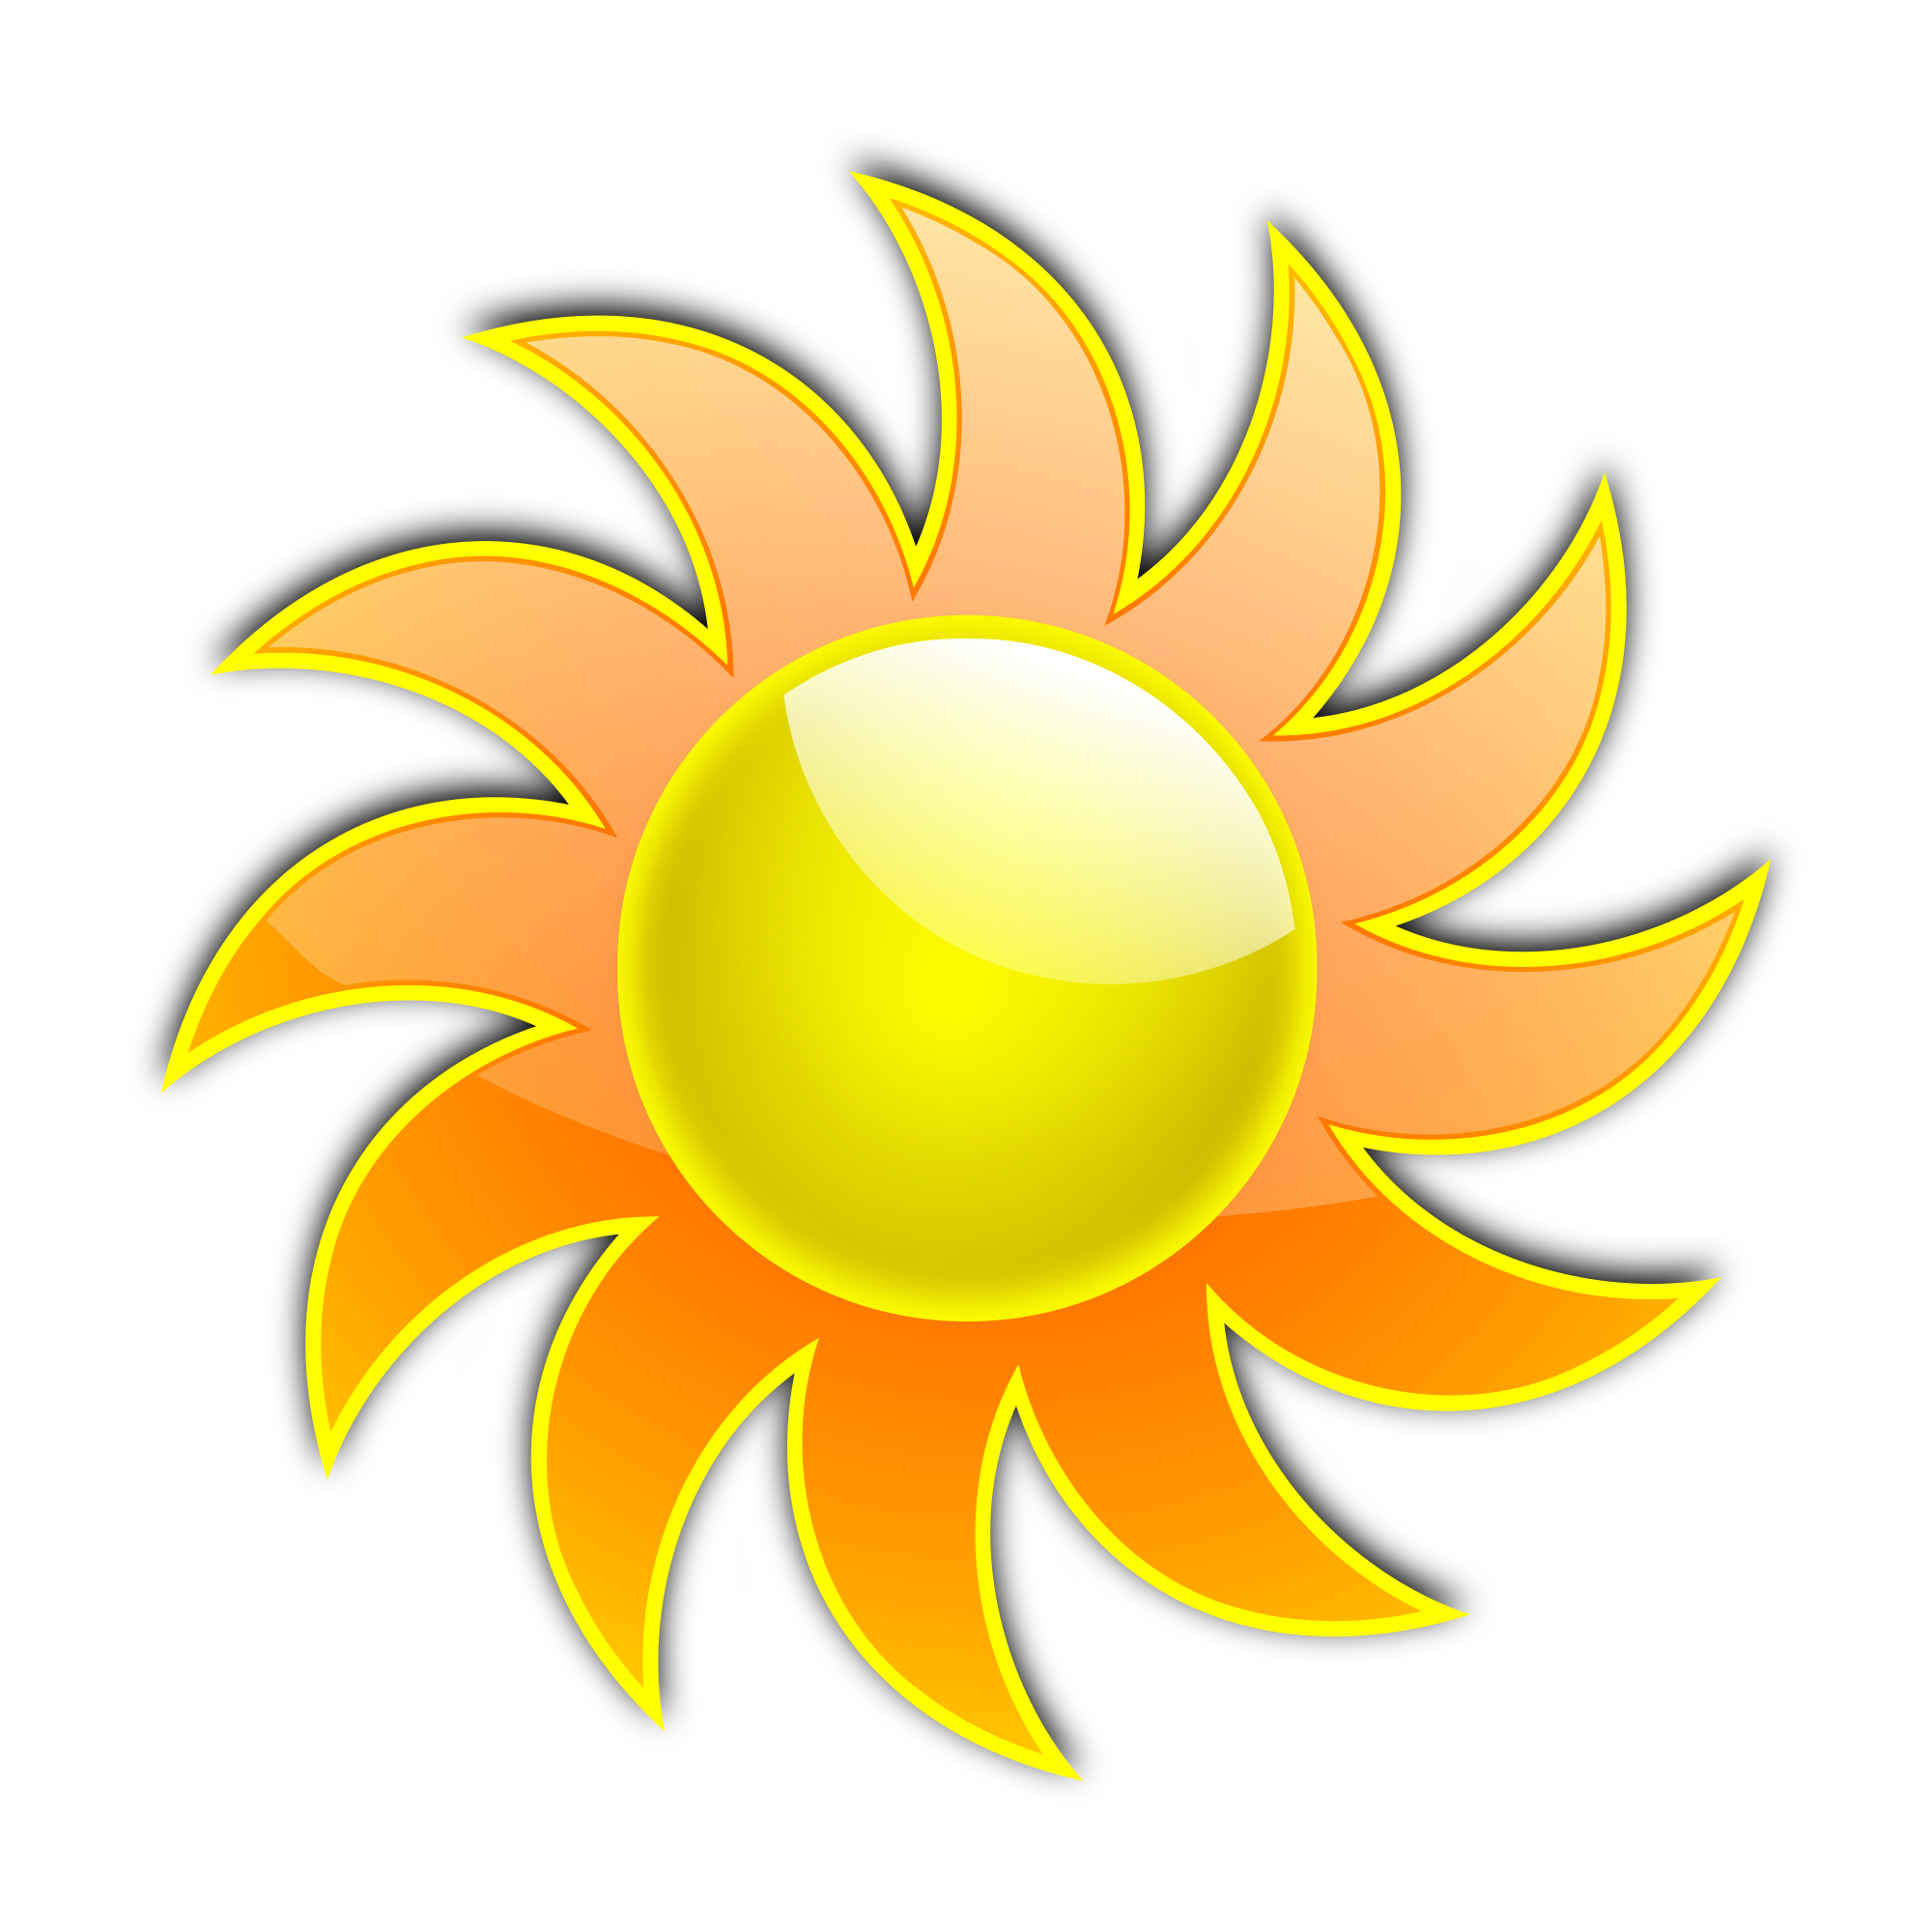 Sunshine free sun clipart clip art images and